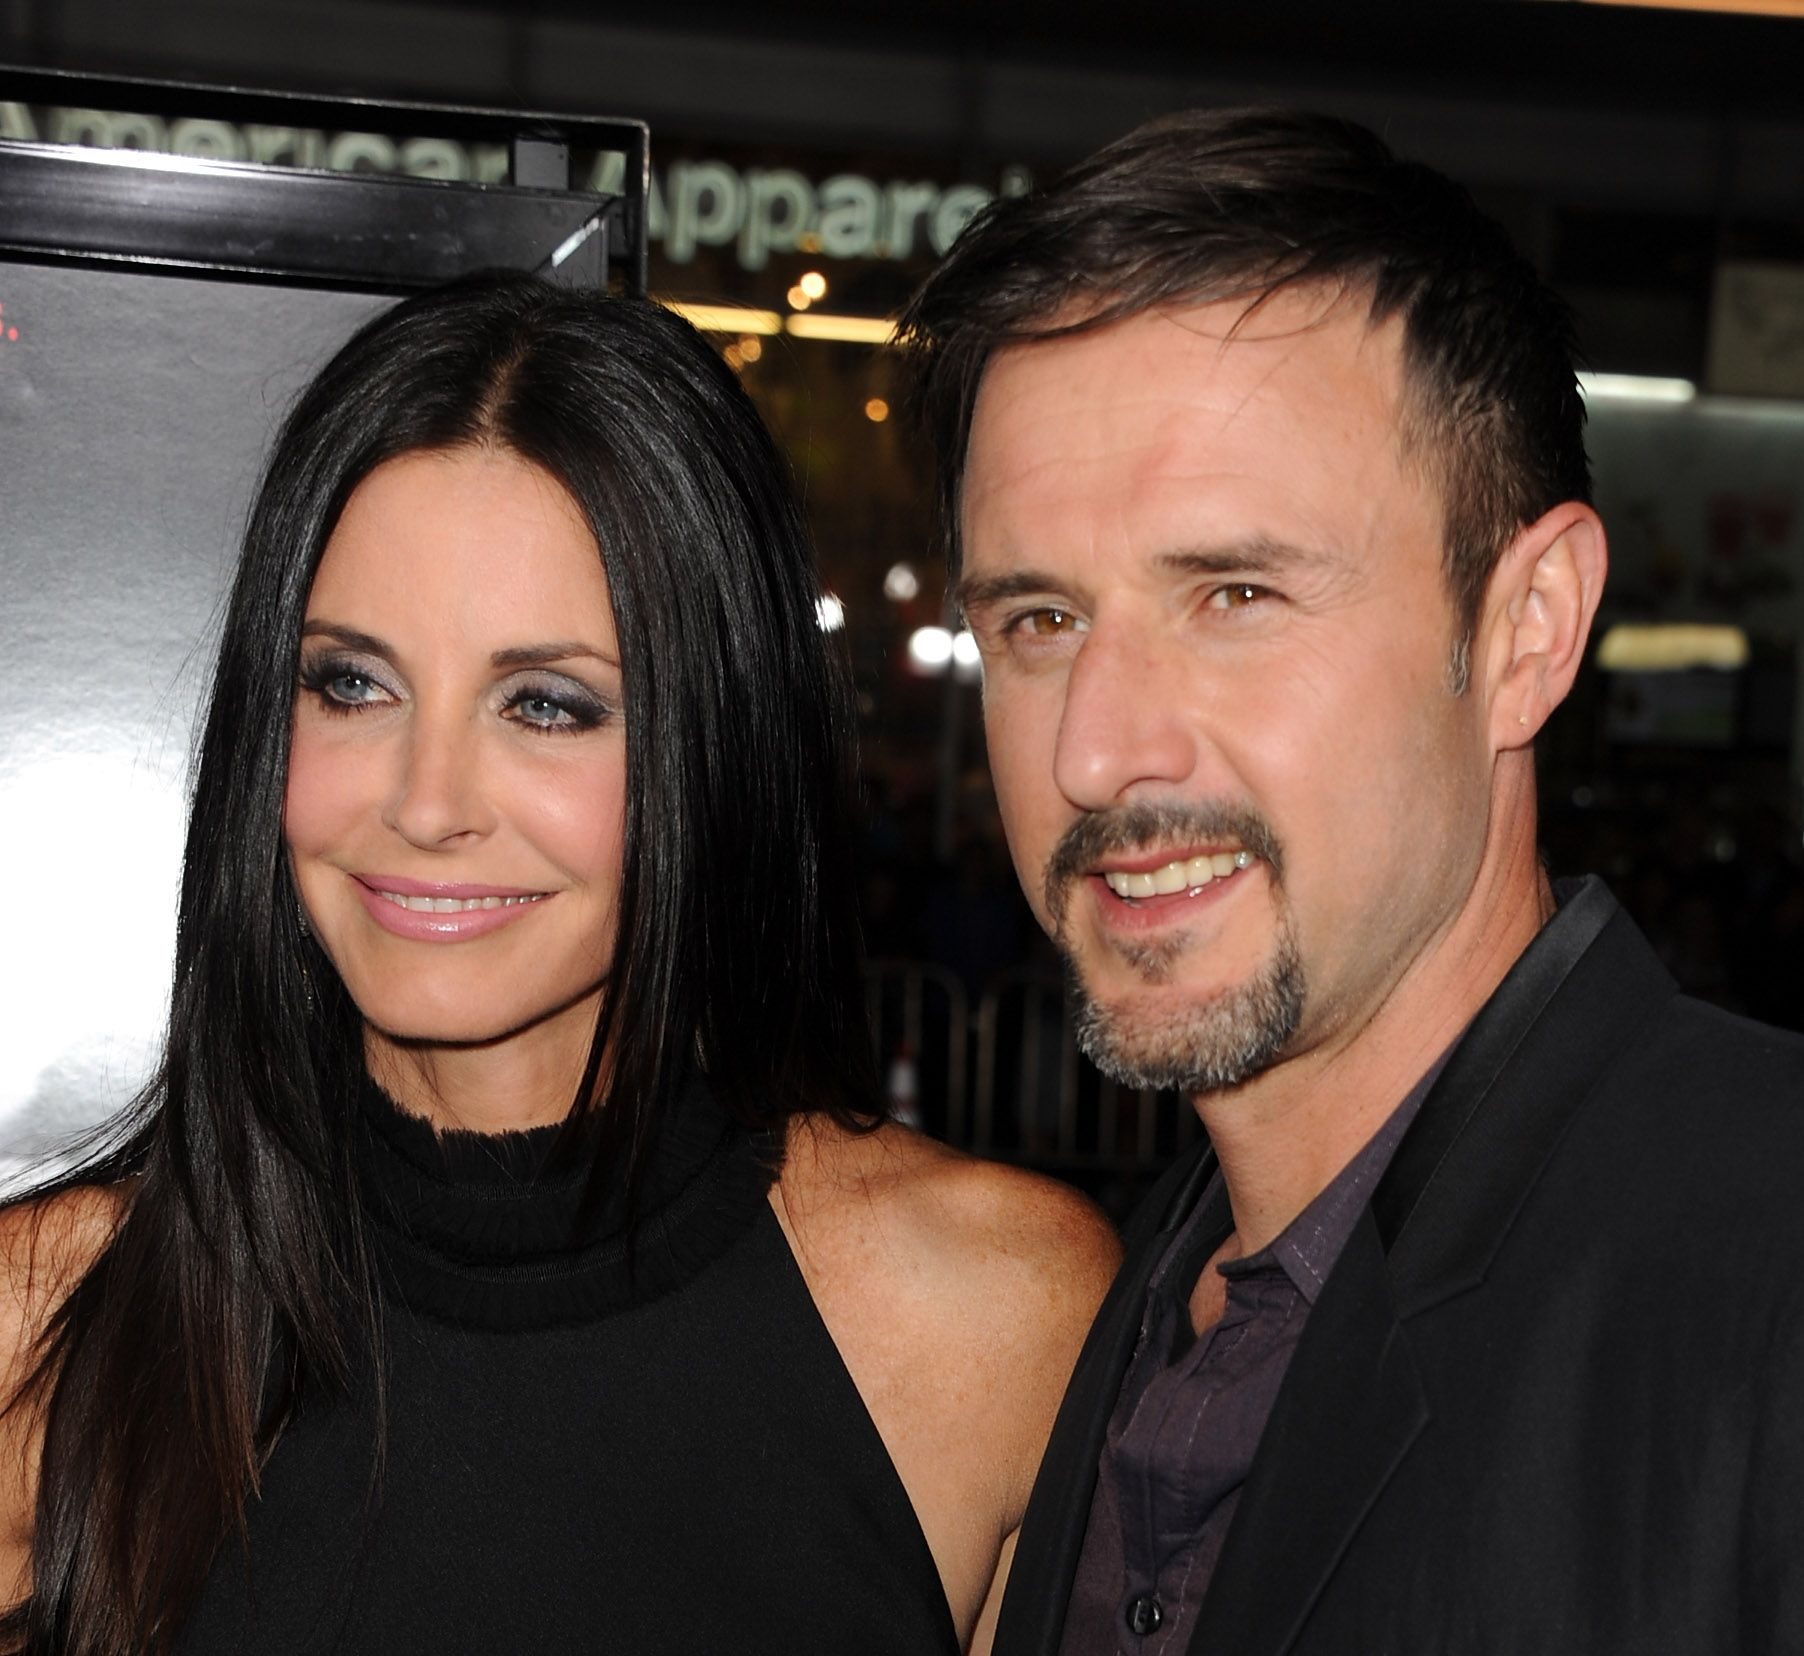 """Courteney Cox and David Arquette at the premiere of """"Scream 4"""" at Grauman's Chinese Theatre in Hollywood, California in 2011 